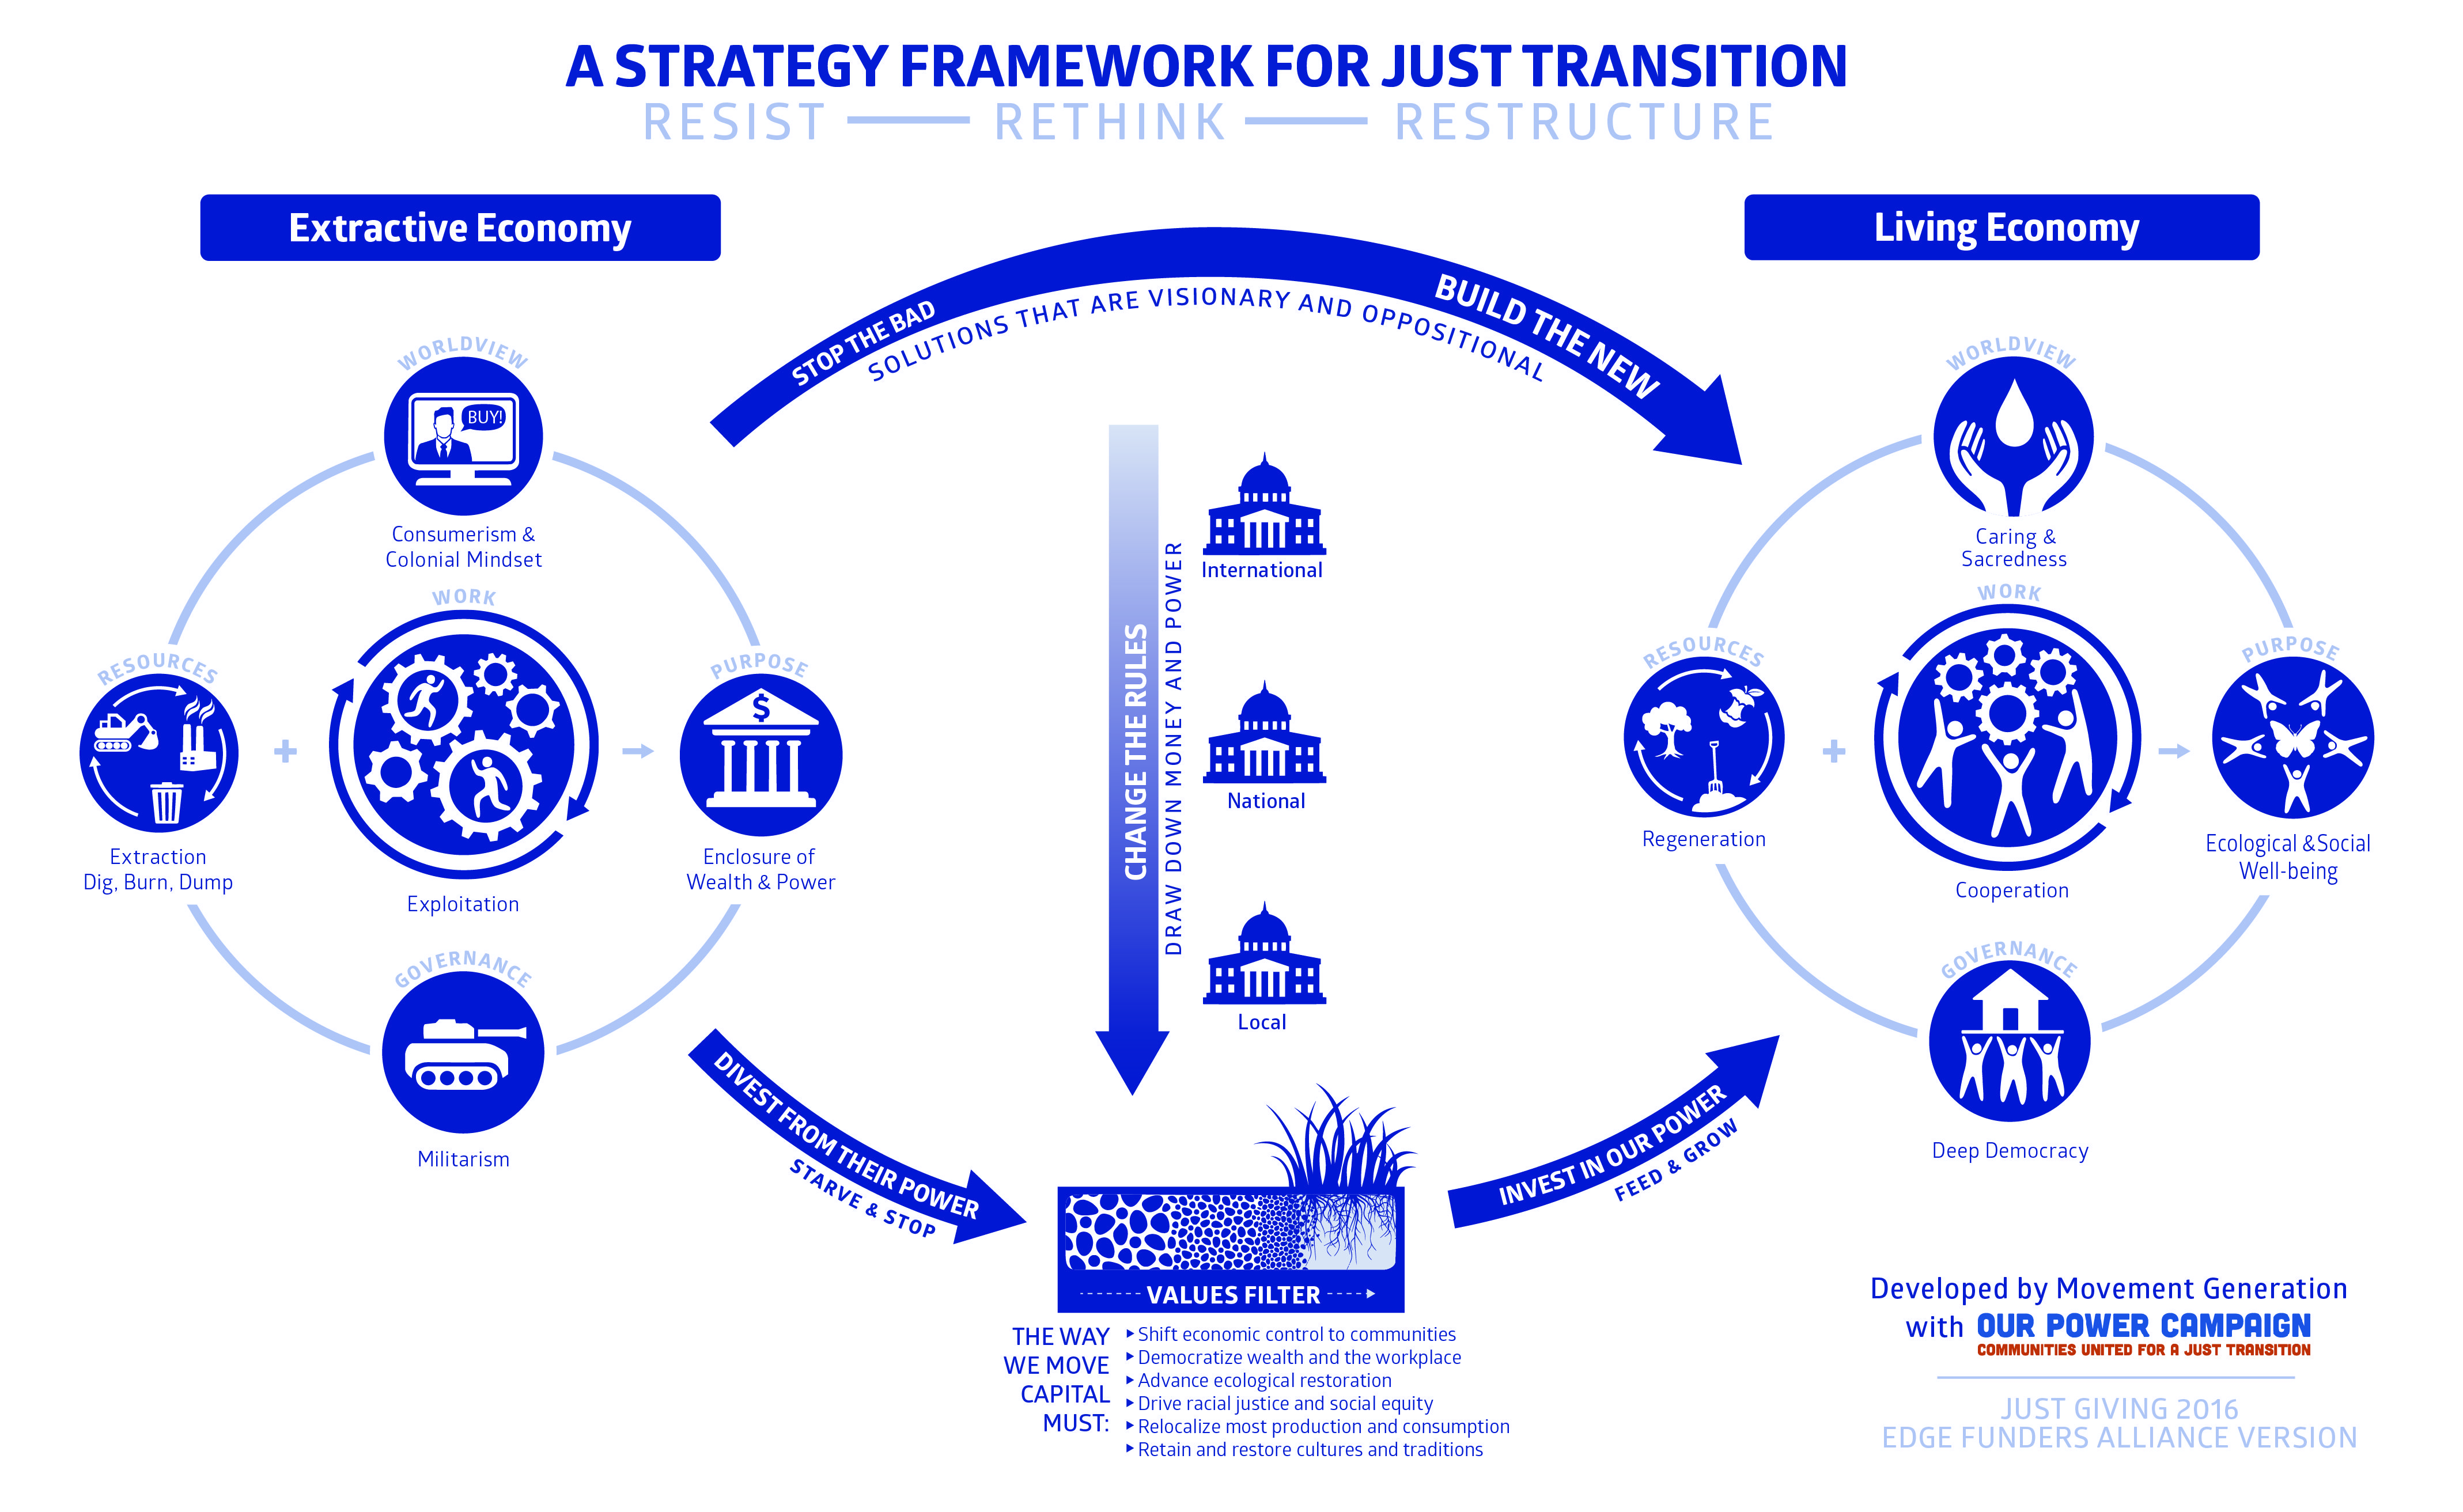 Movement Generation Movement Generation Just Transition Framework Resources Theory Of Change Change Management Environmental Justice